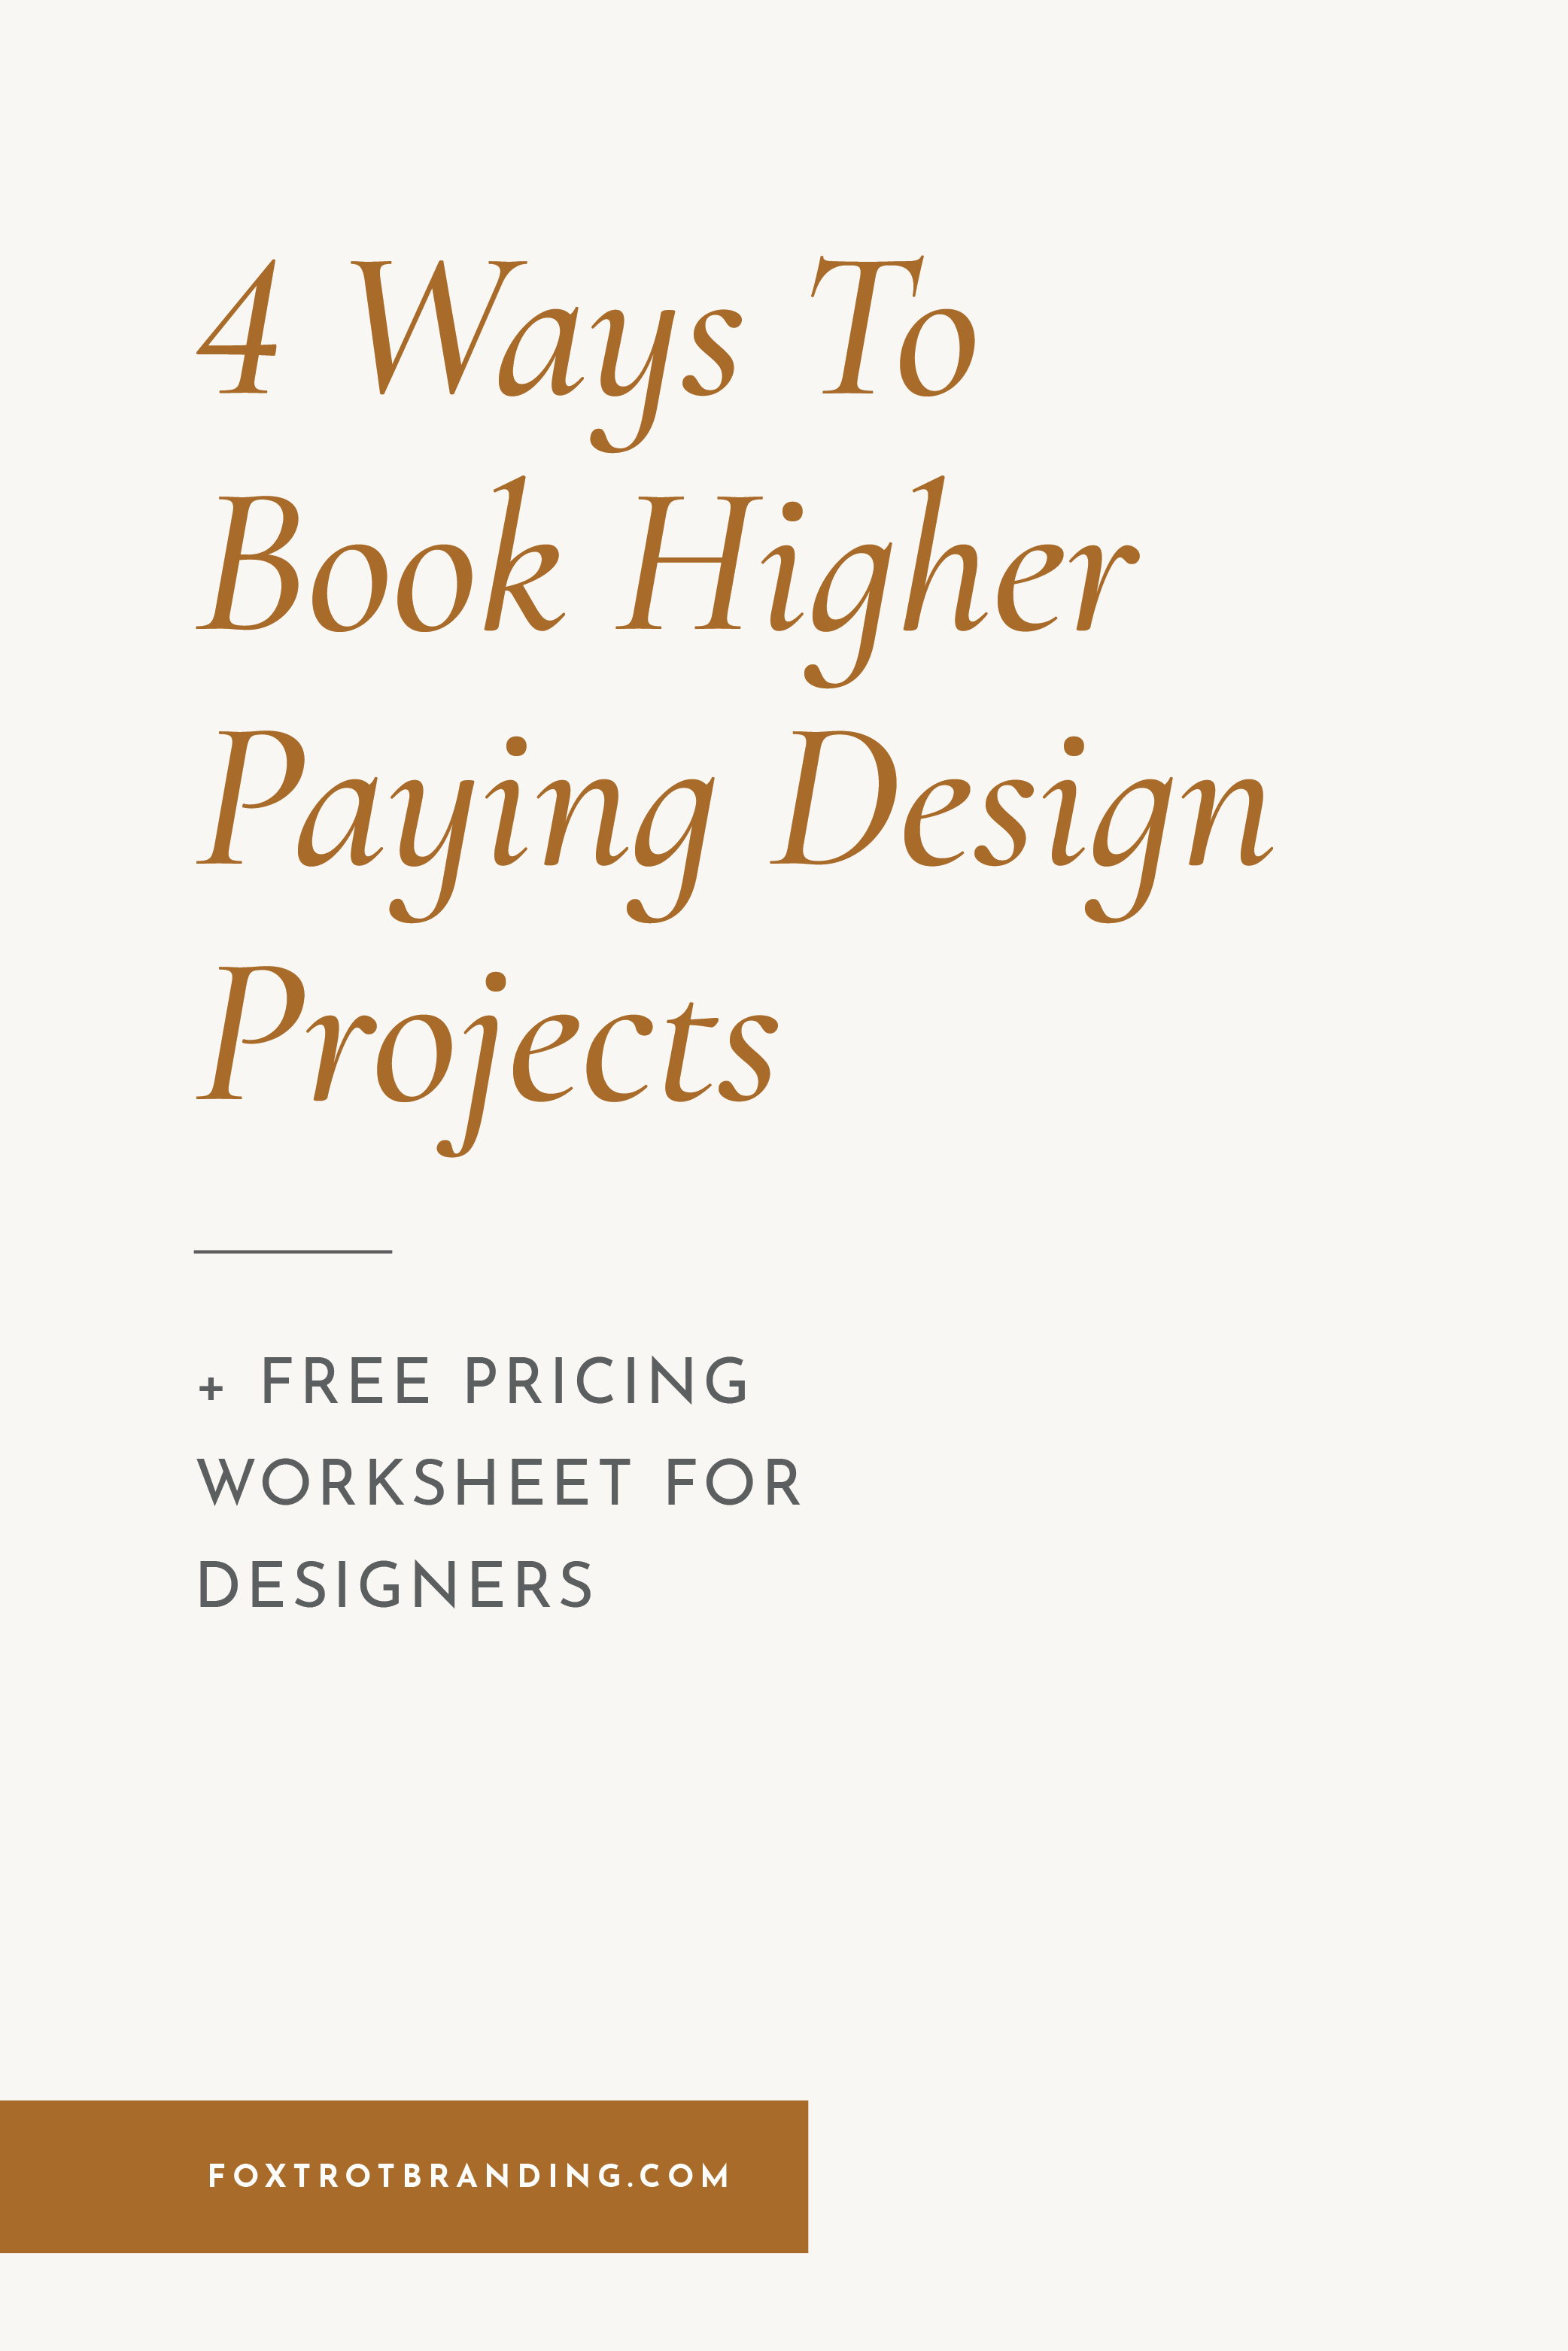 4 Ways To Book Higher Paying Design Projects